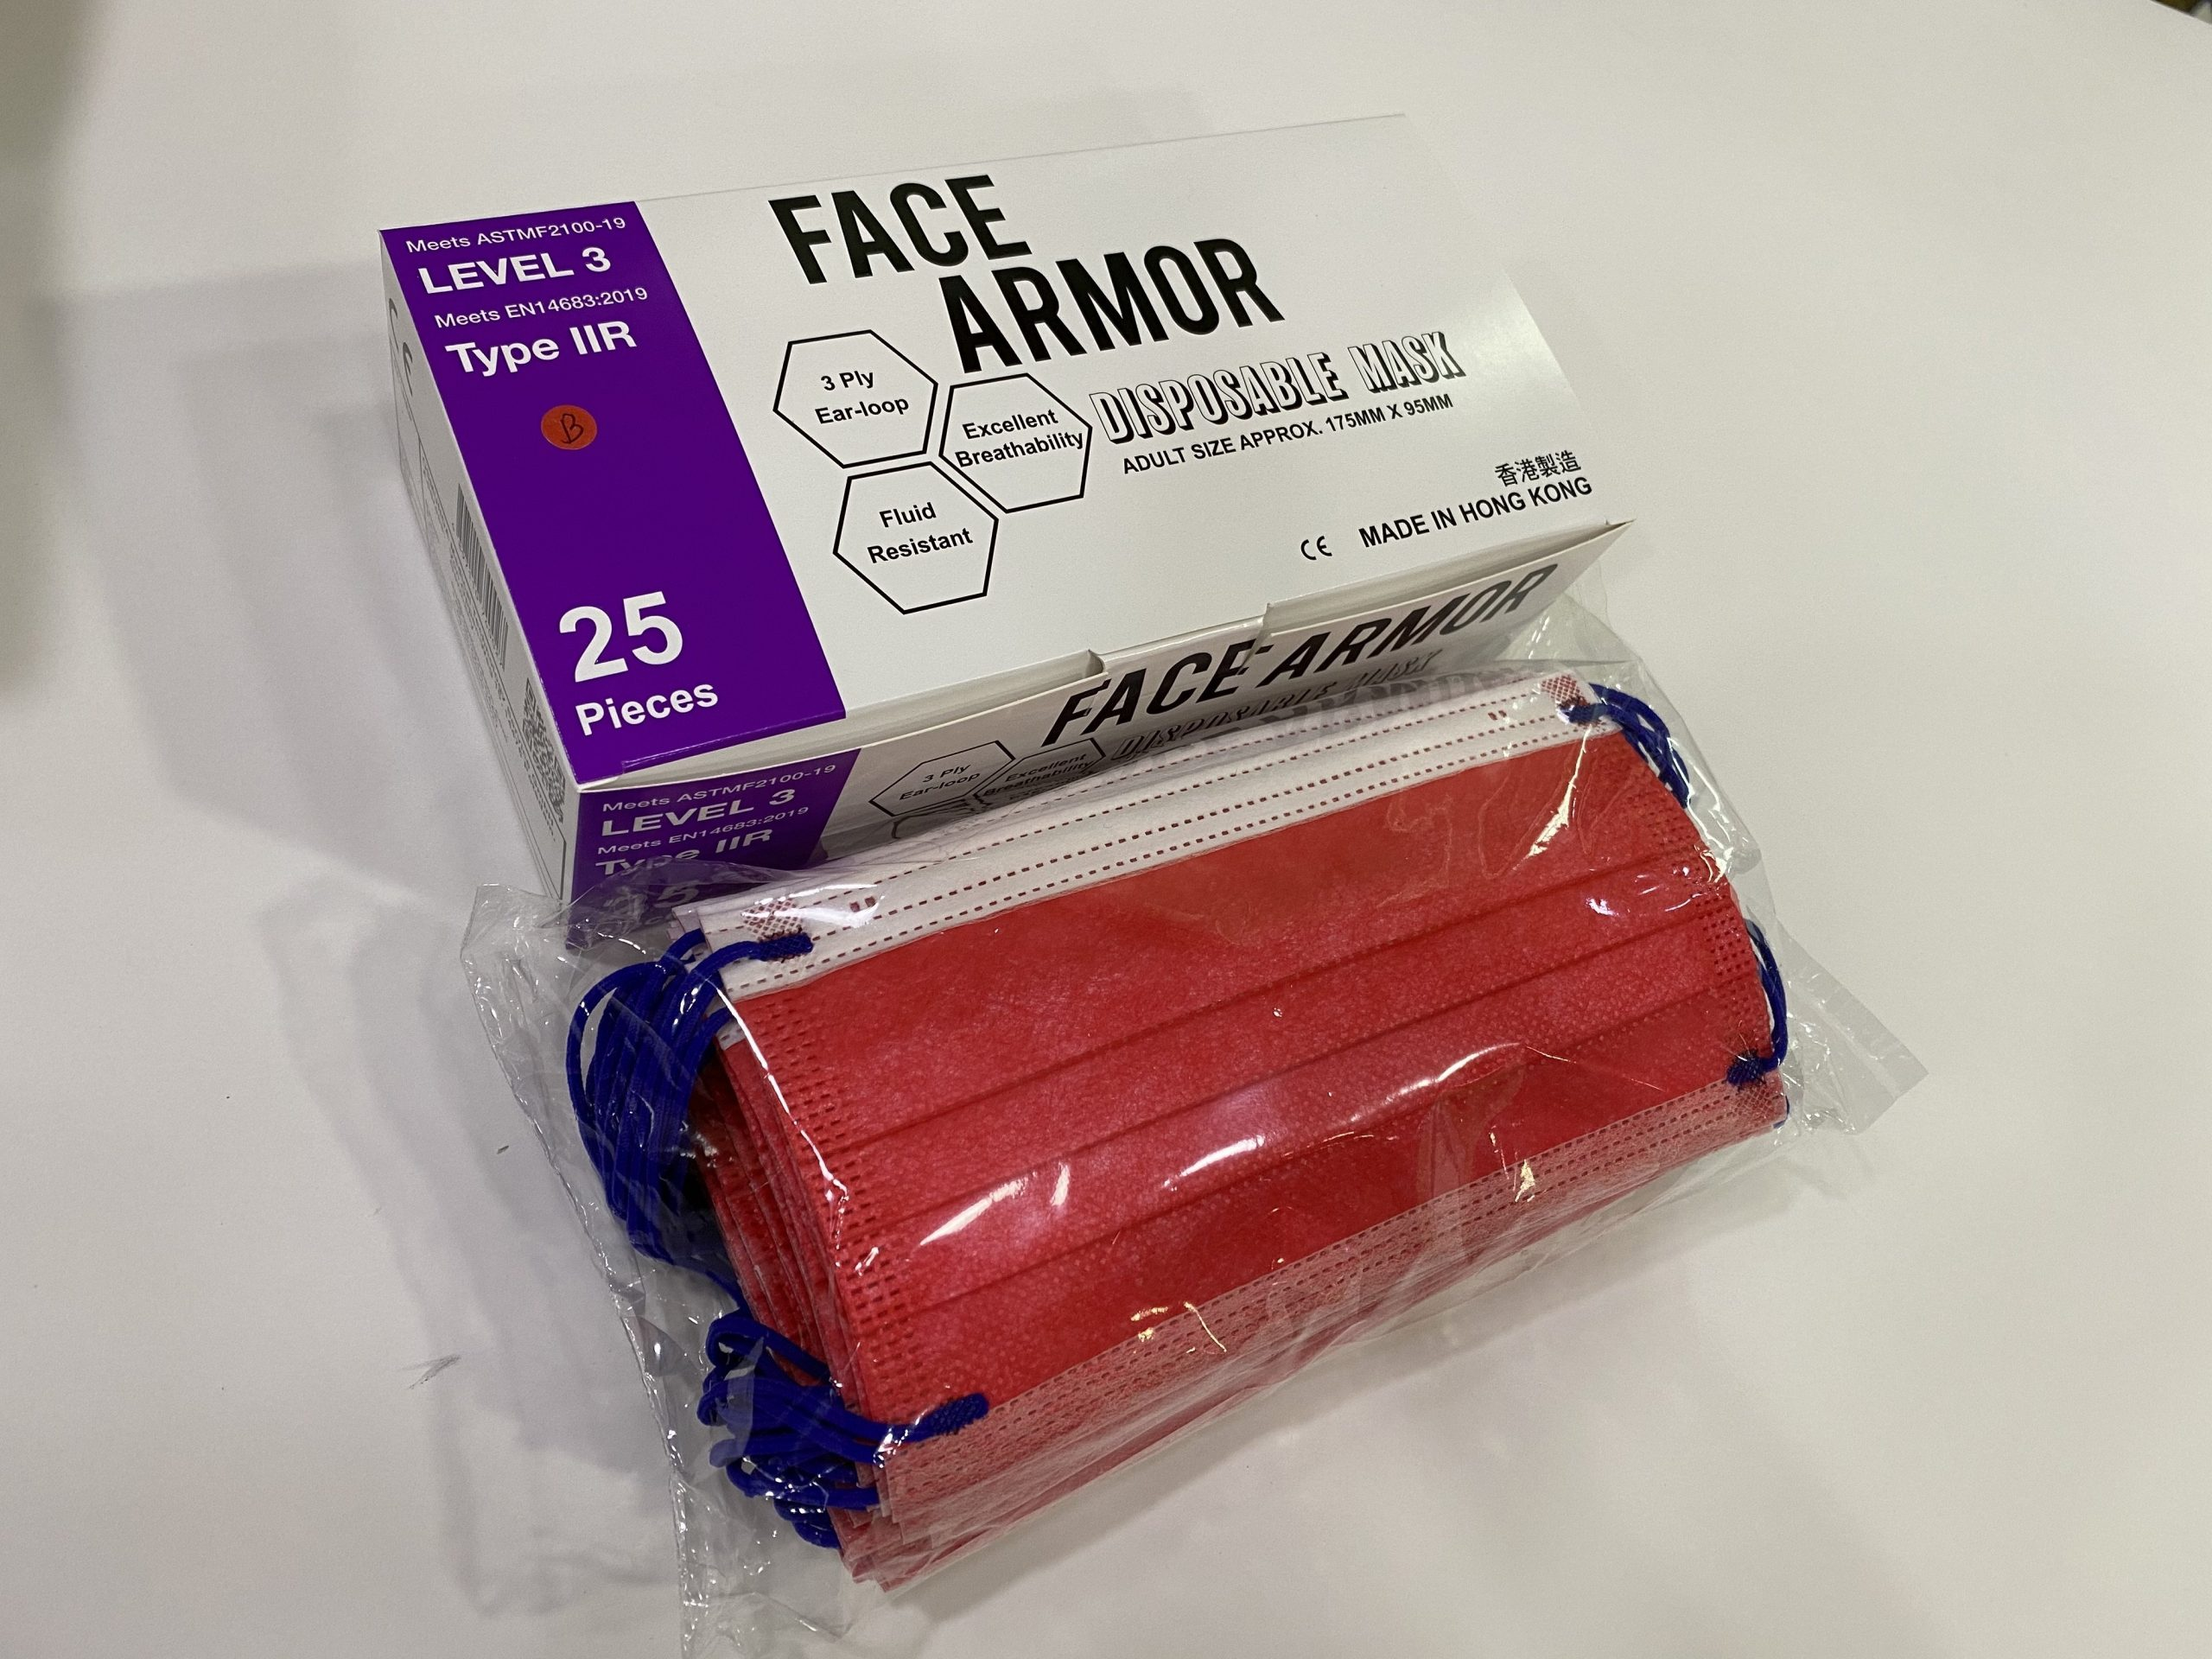 Face Armor Disposable Masks | ASTM LEVEL 3 | Made in Hong Kong| 25 PIECES | RED W/ BLUE EARLOOP